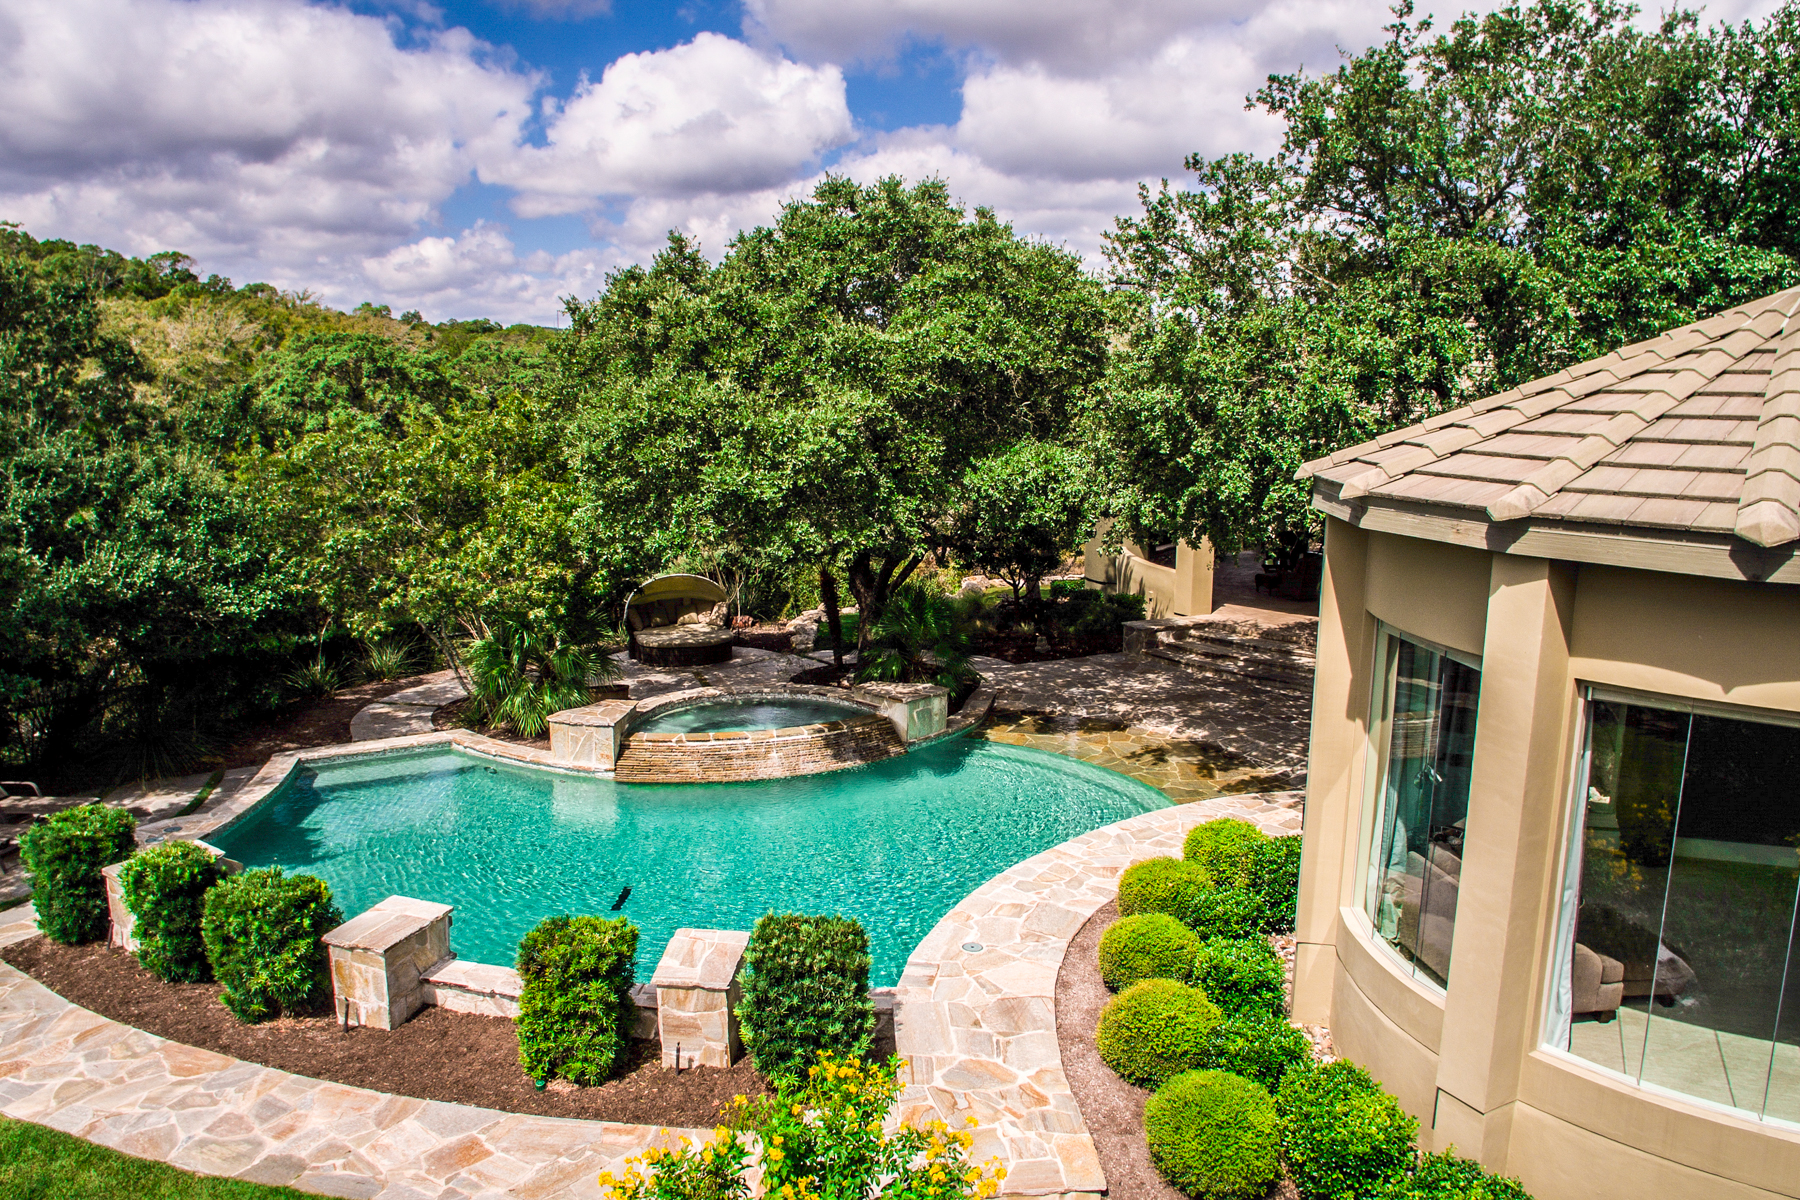 Single Family Home for Sale at Extraordinary Award-Winning Luxury Estate 11426 Cat Springs Boerne, Texas 78006 United States